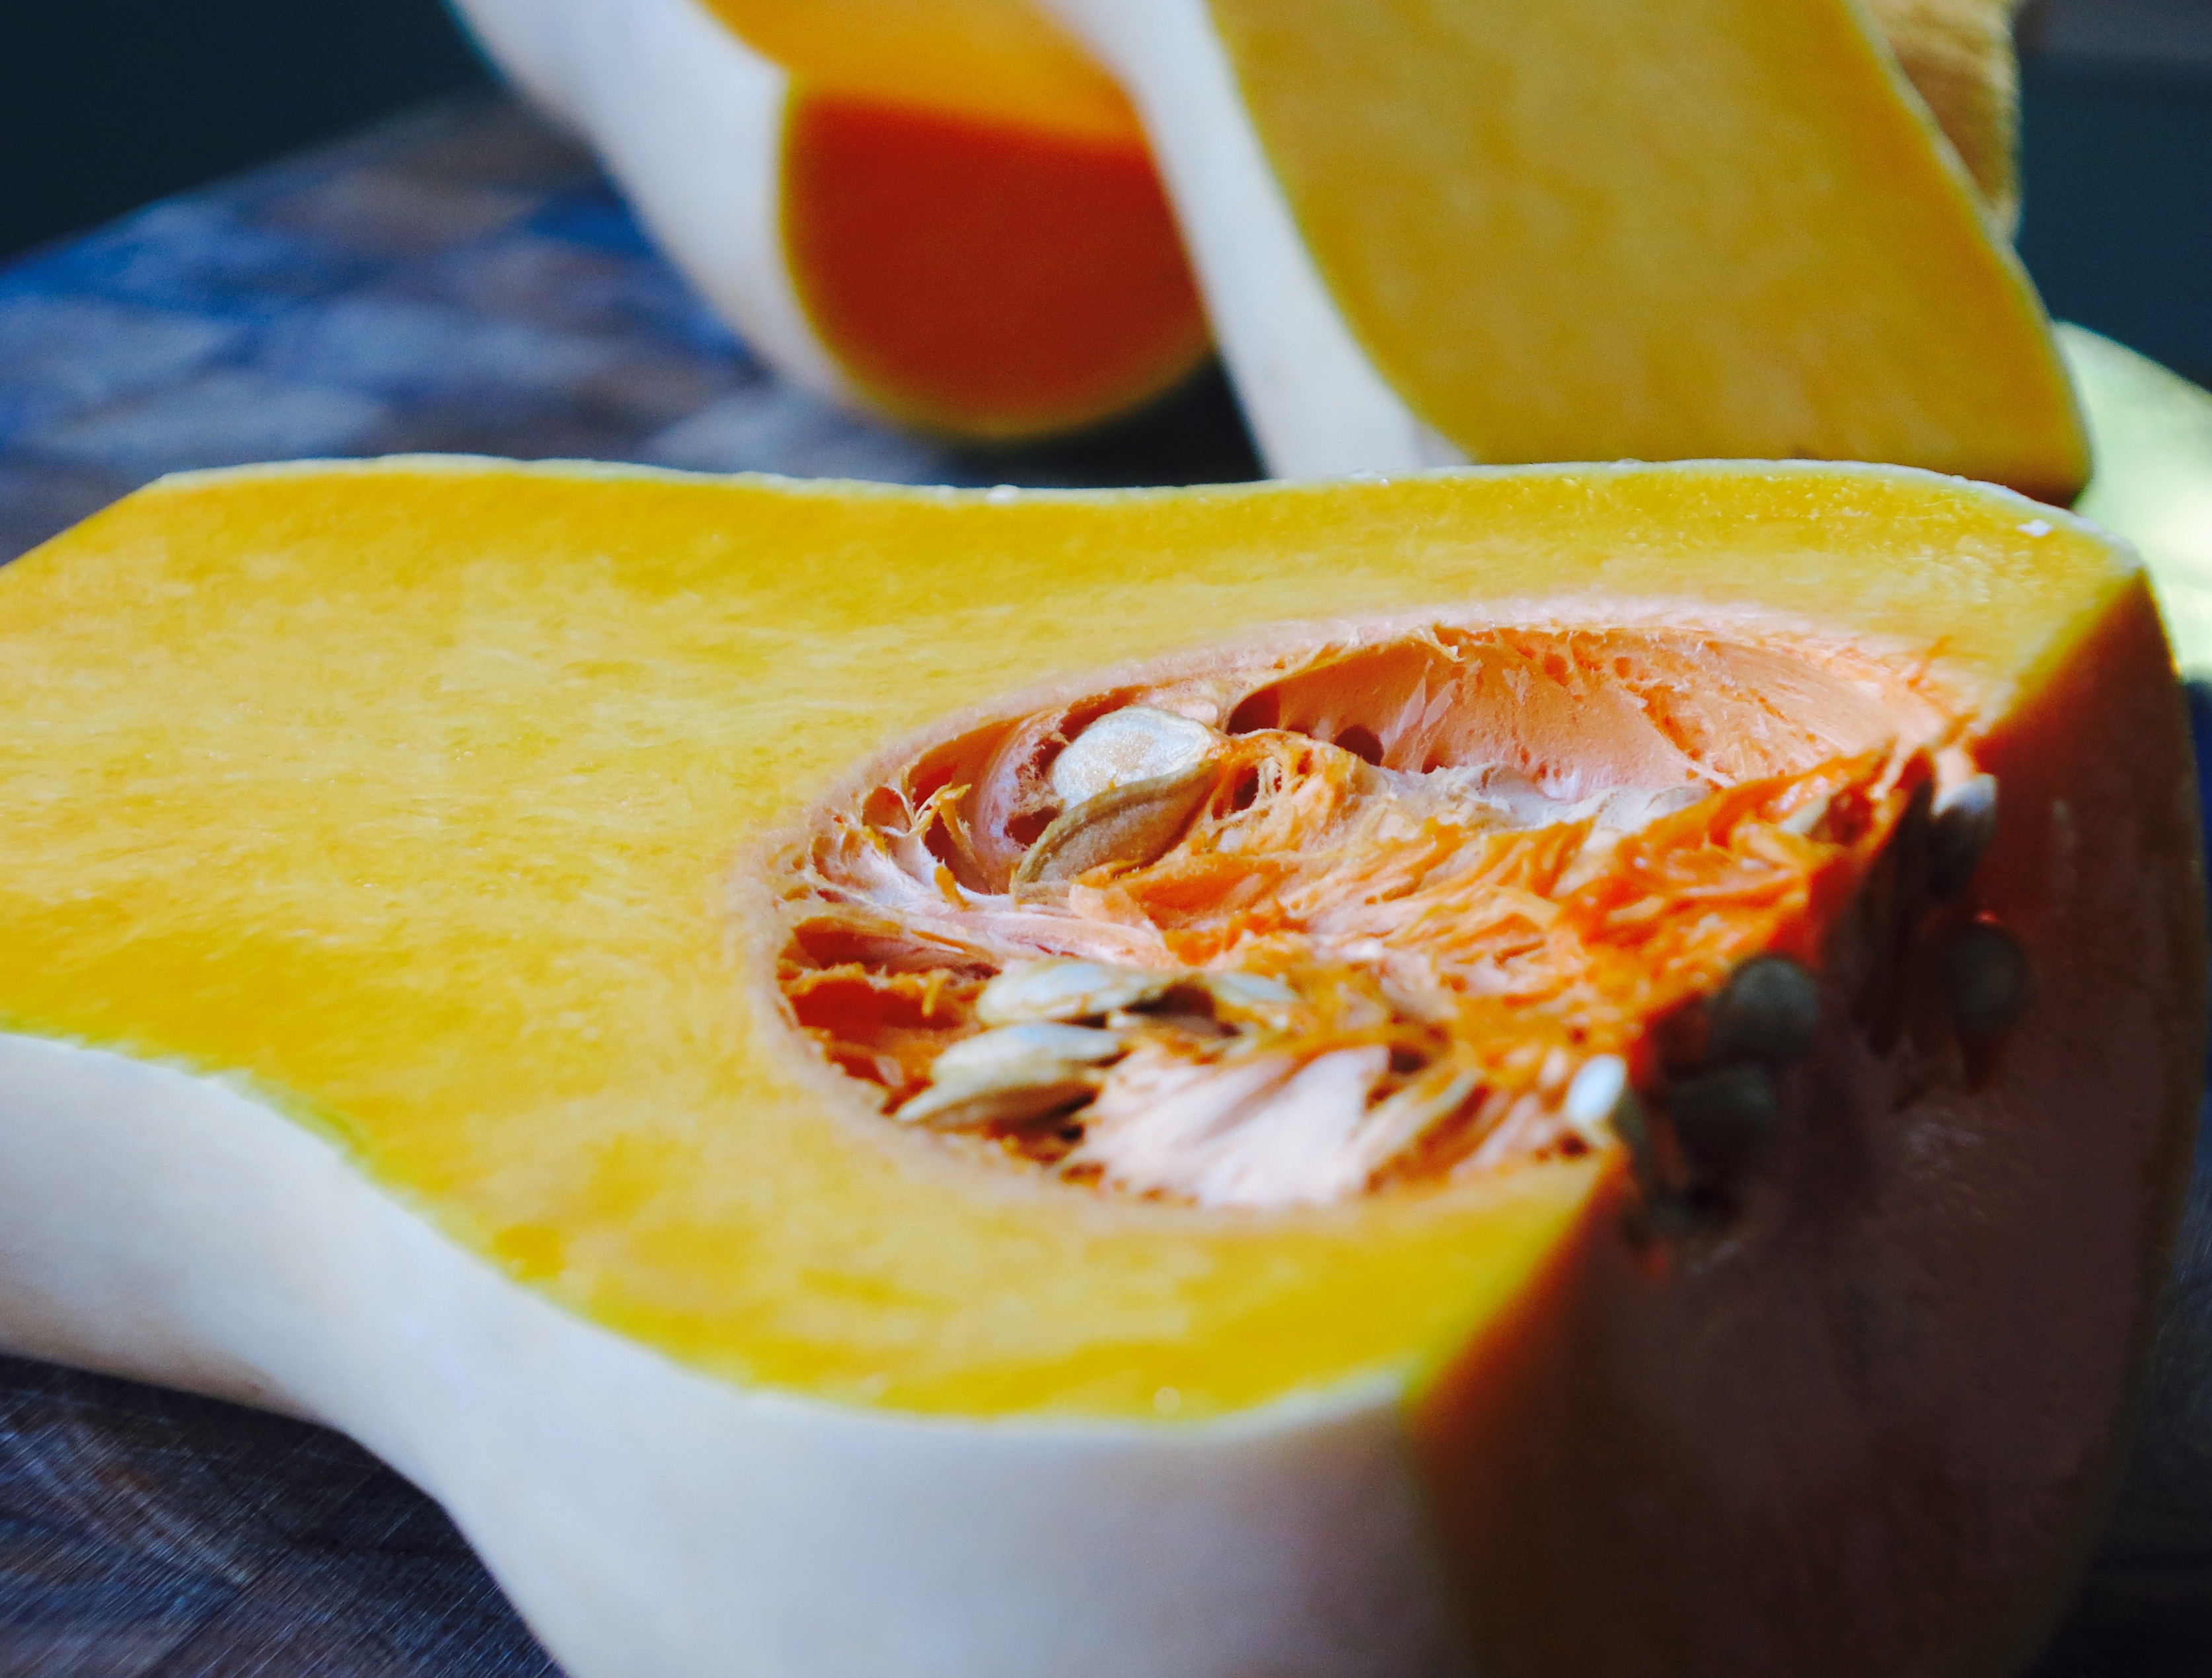 Roasted Butternut Squash Soup with Pesto and toasted Pumpkin Seeds